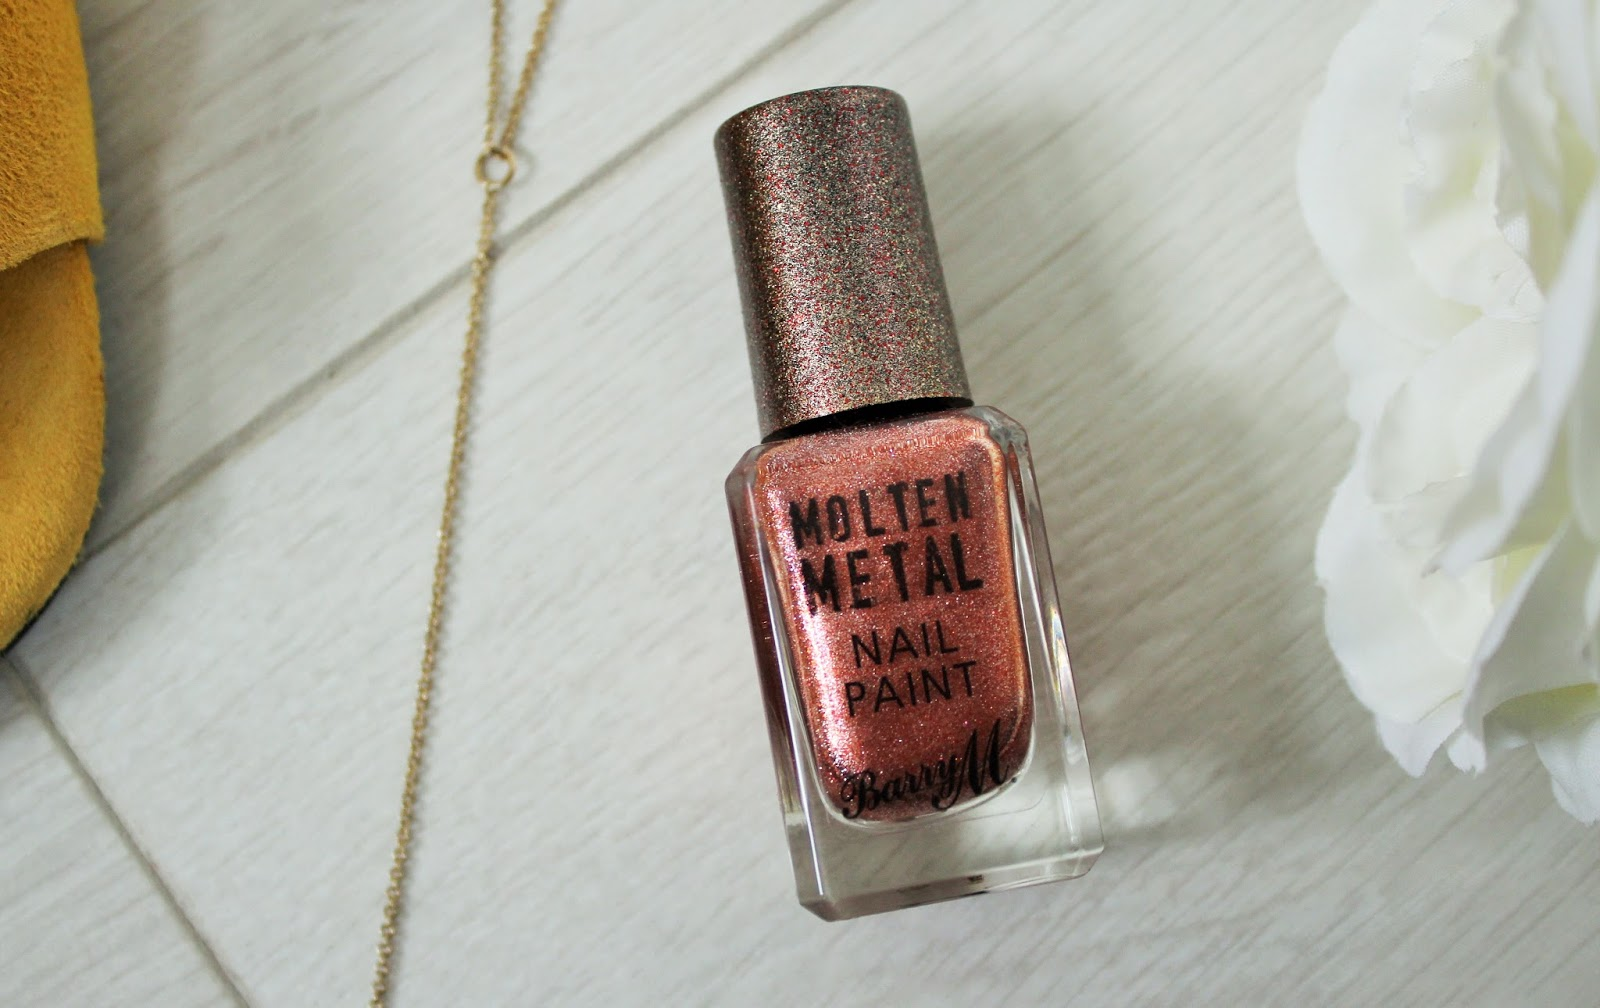 September Favourites 3 - Barry M Molten Metal Nail Paint in Copper Mine